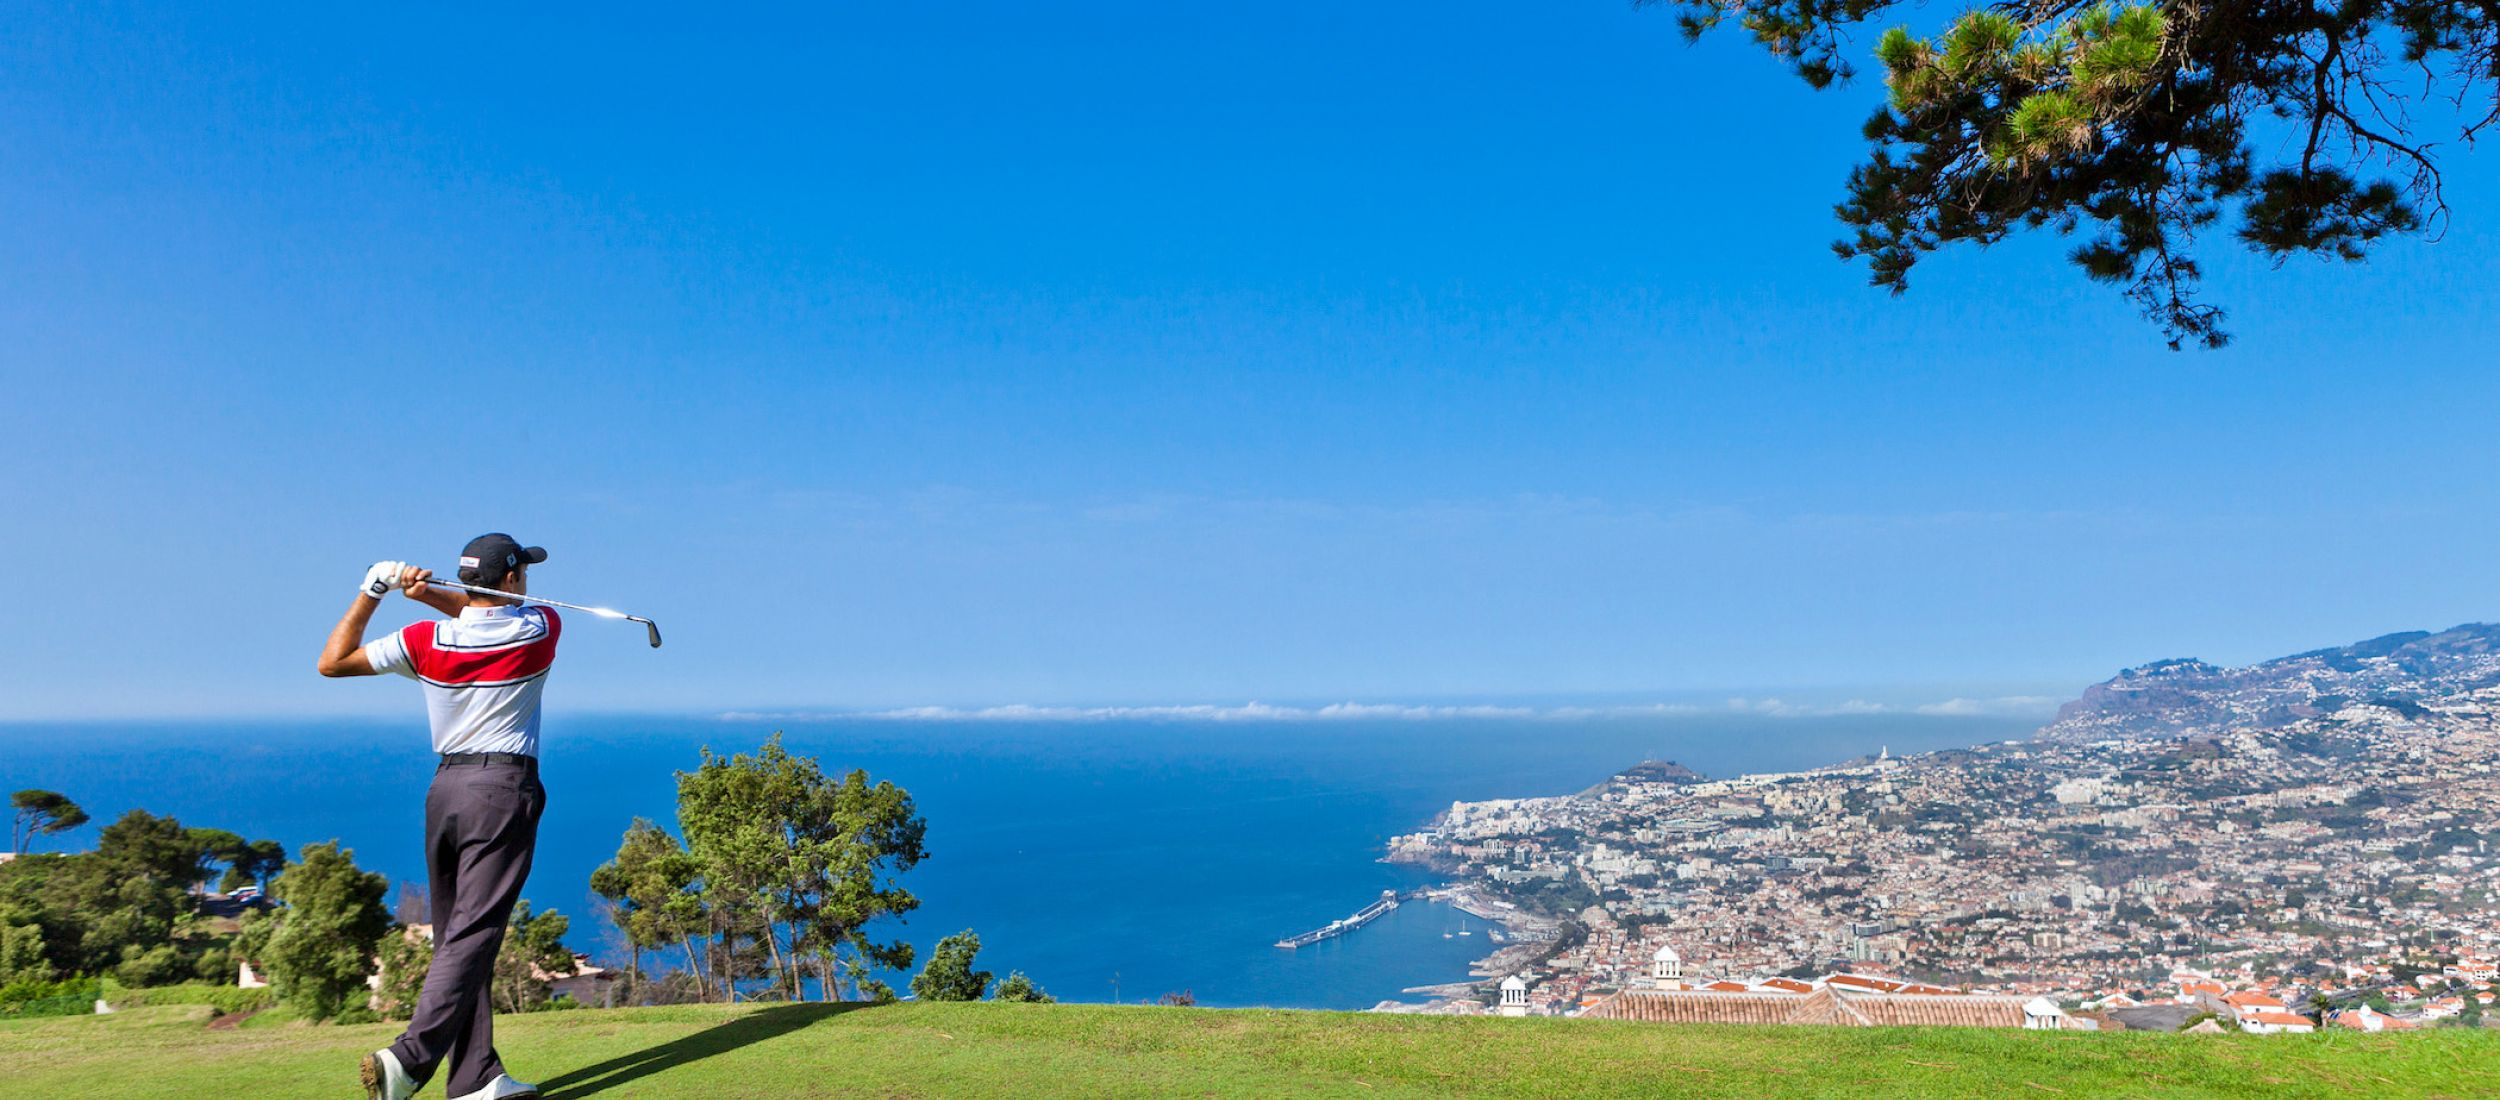 The bay of Funchal